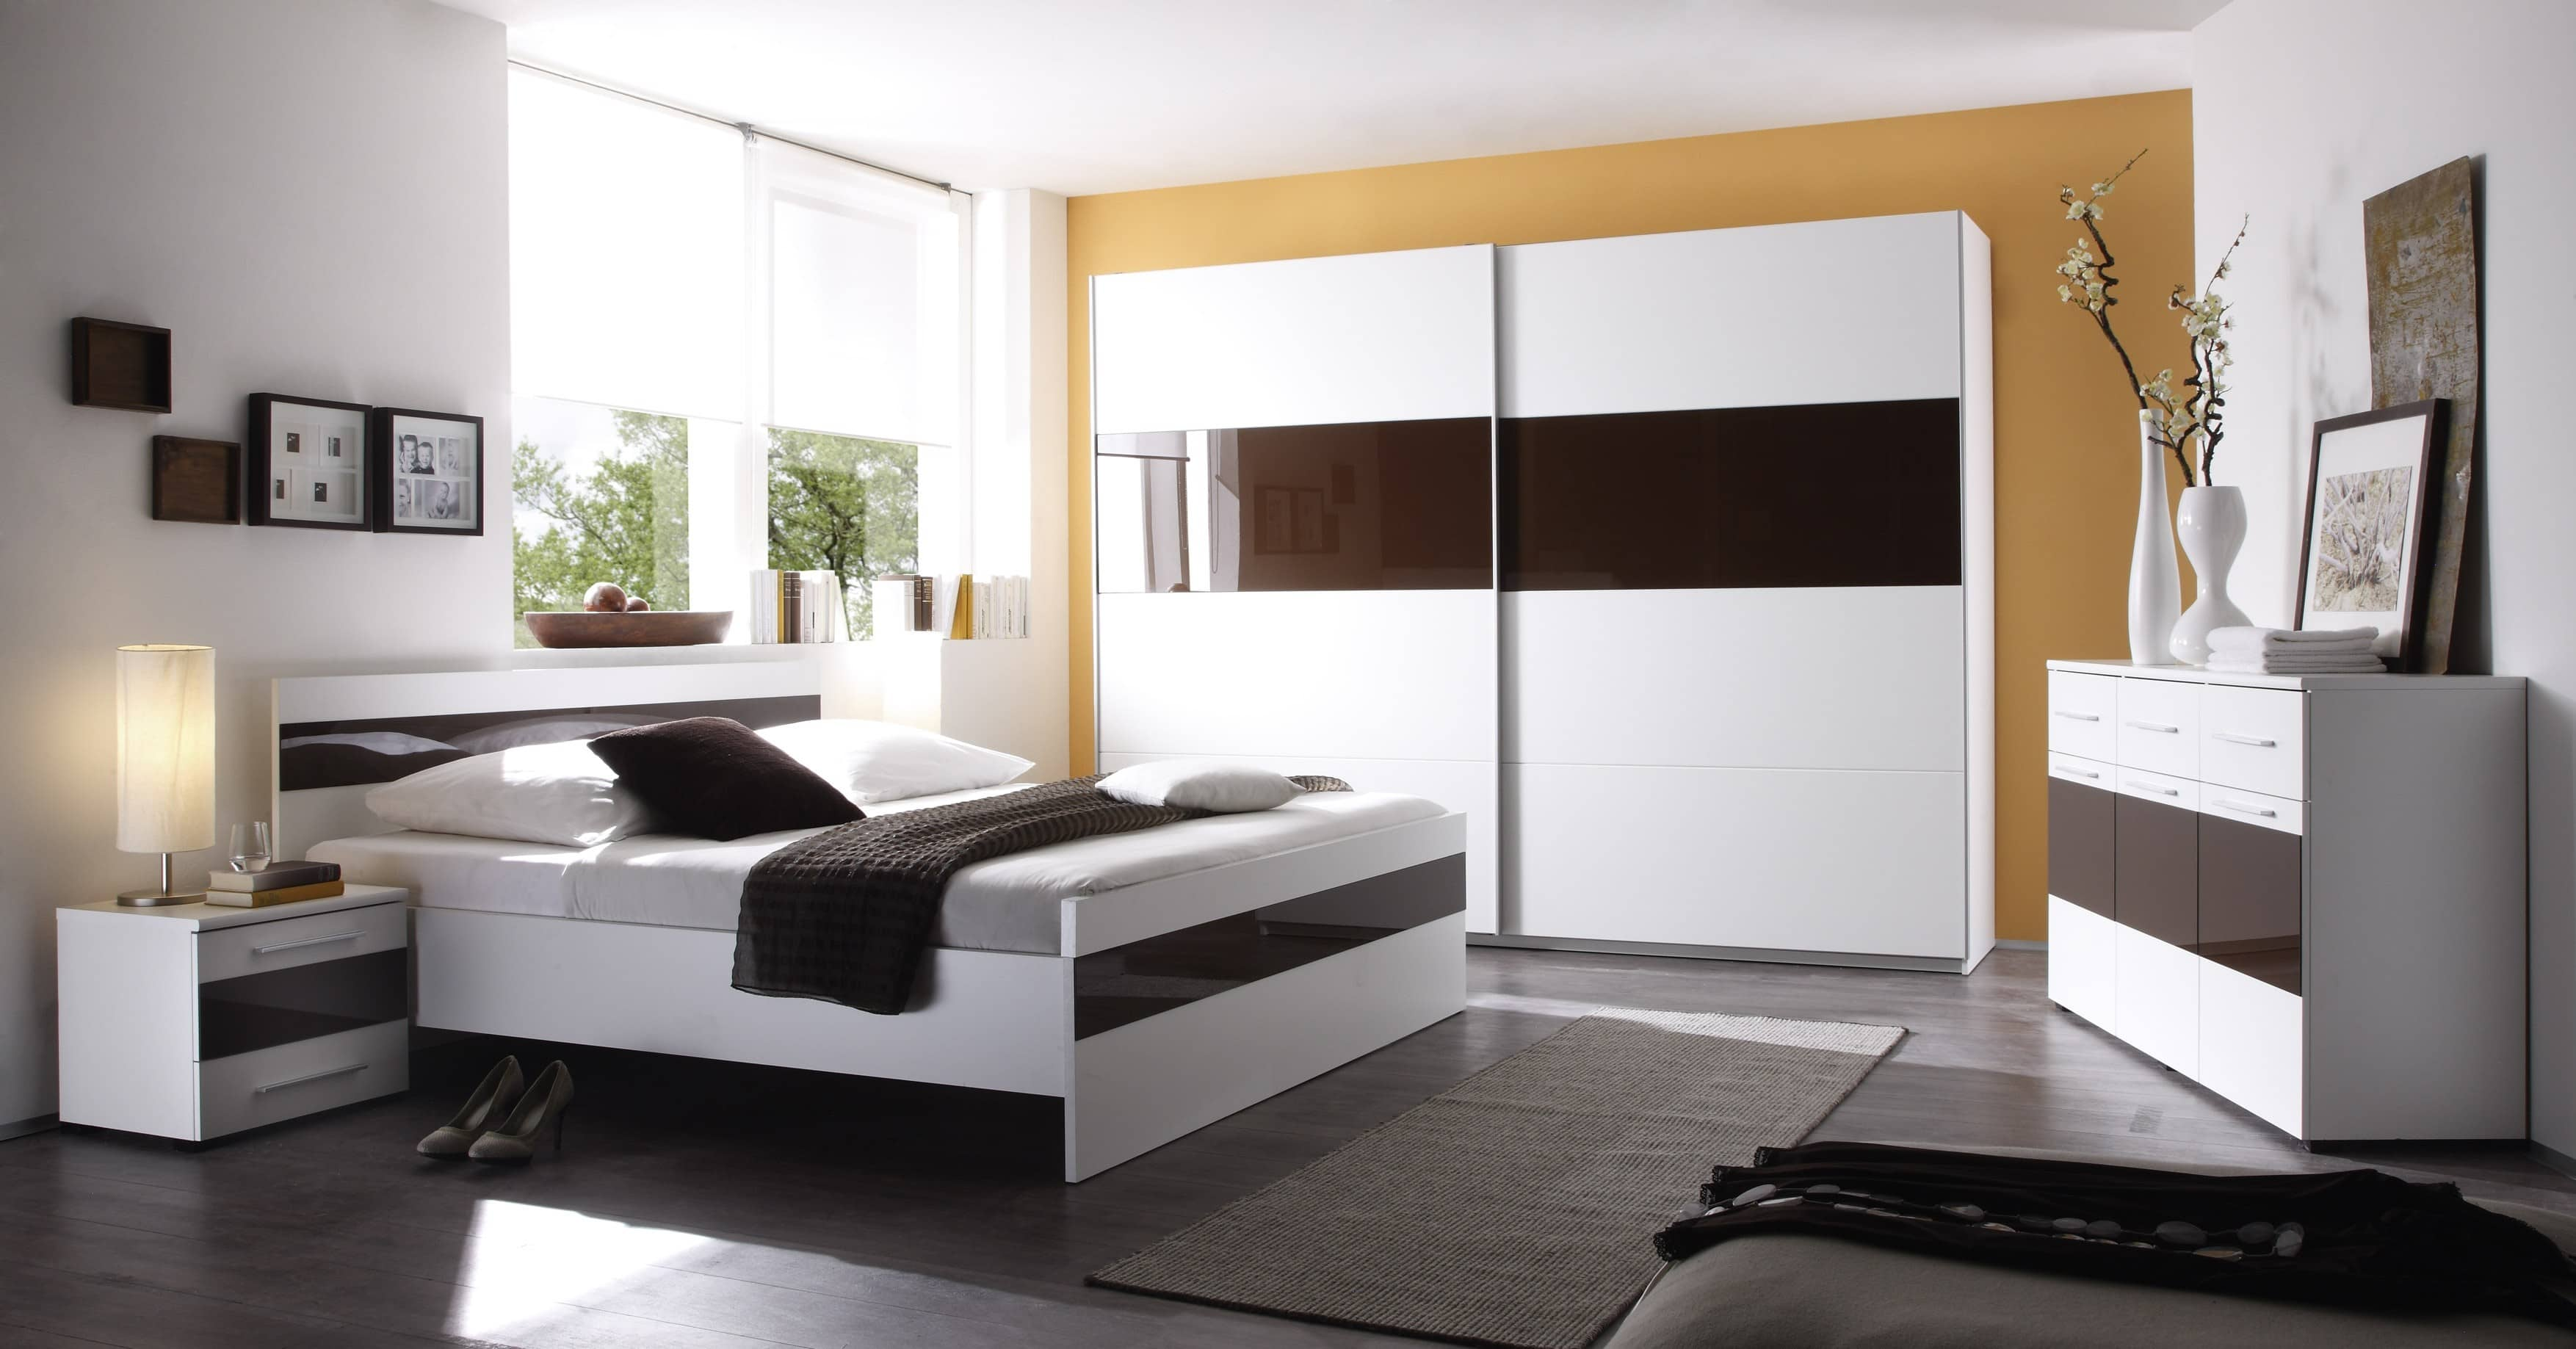 miroir de chambre conforama solutions pour la d coration int rieure de votre maison. Black Bedroom Furniture Sets. Home Design Ideas